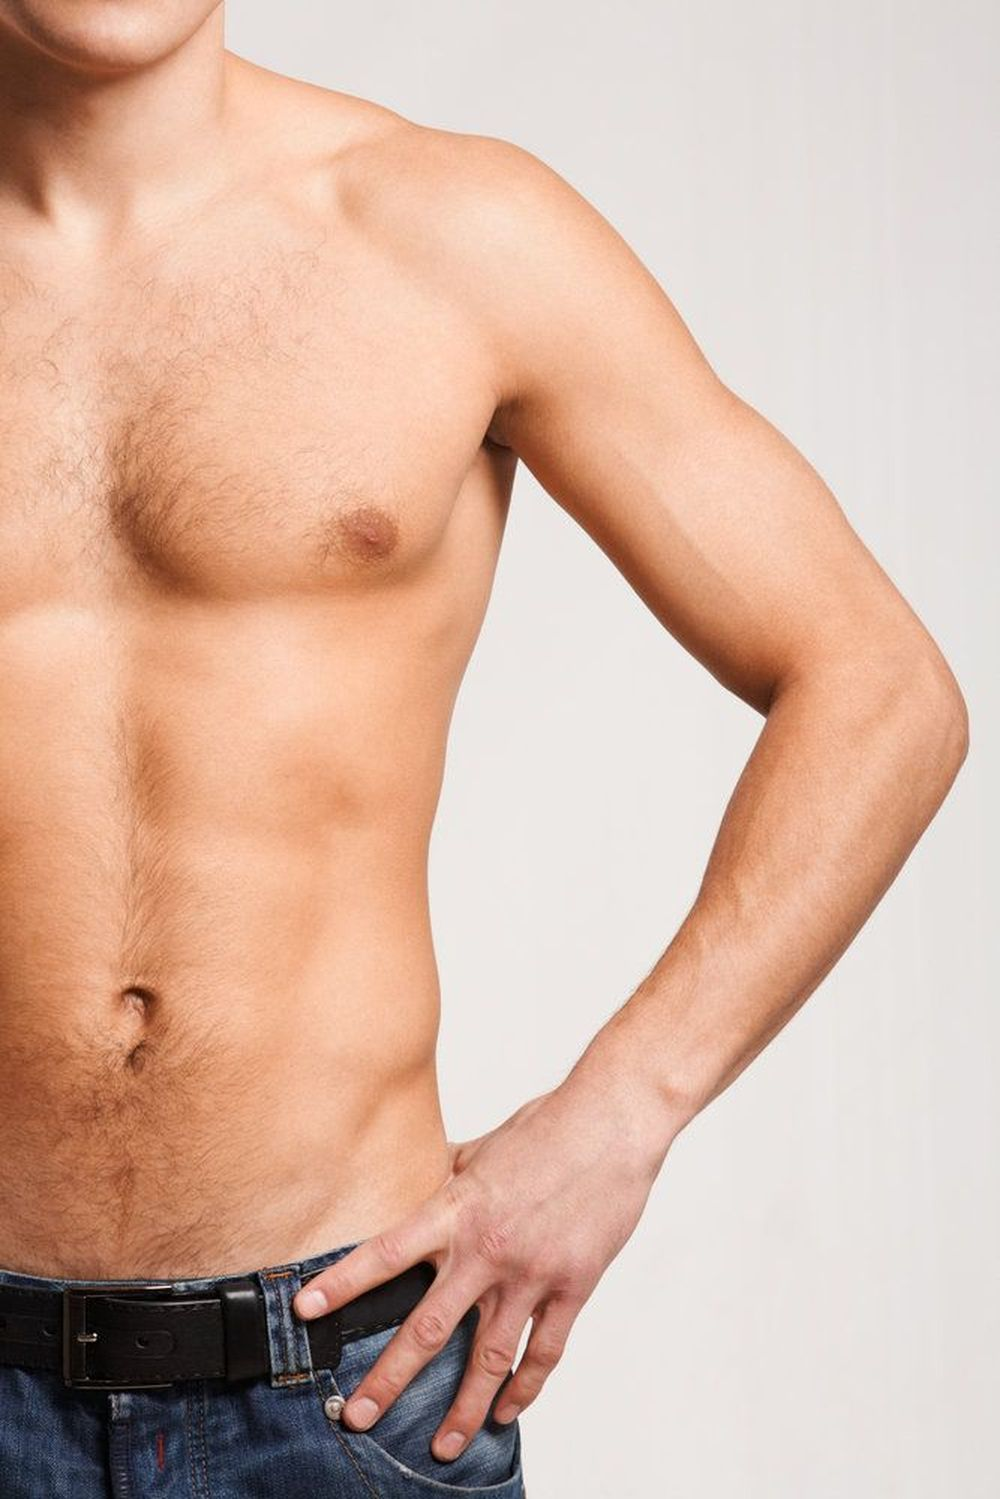 Man's masculine torso with hand on hip